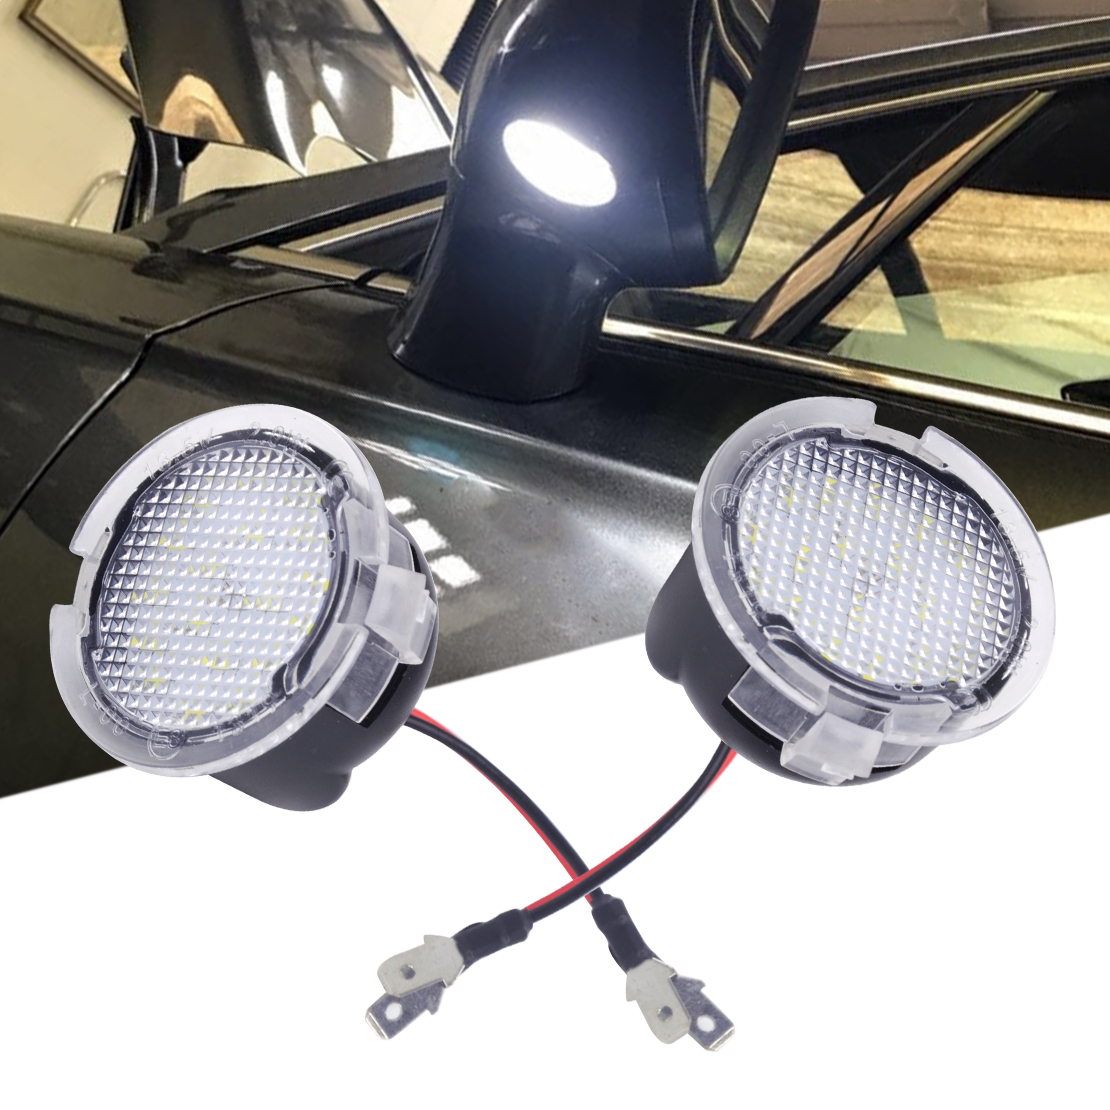 все цены на CITALL 2pcs High Power White LED Under Side Mirror Puddle Lights LC07001 Fit for Ford F-150 F150 2009 2010 2011 2012 2013 2014